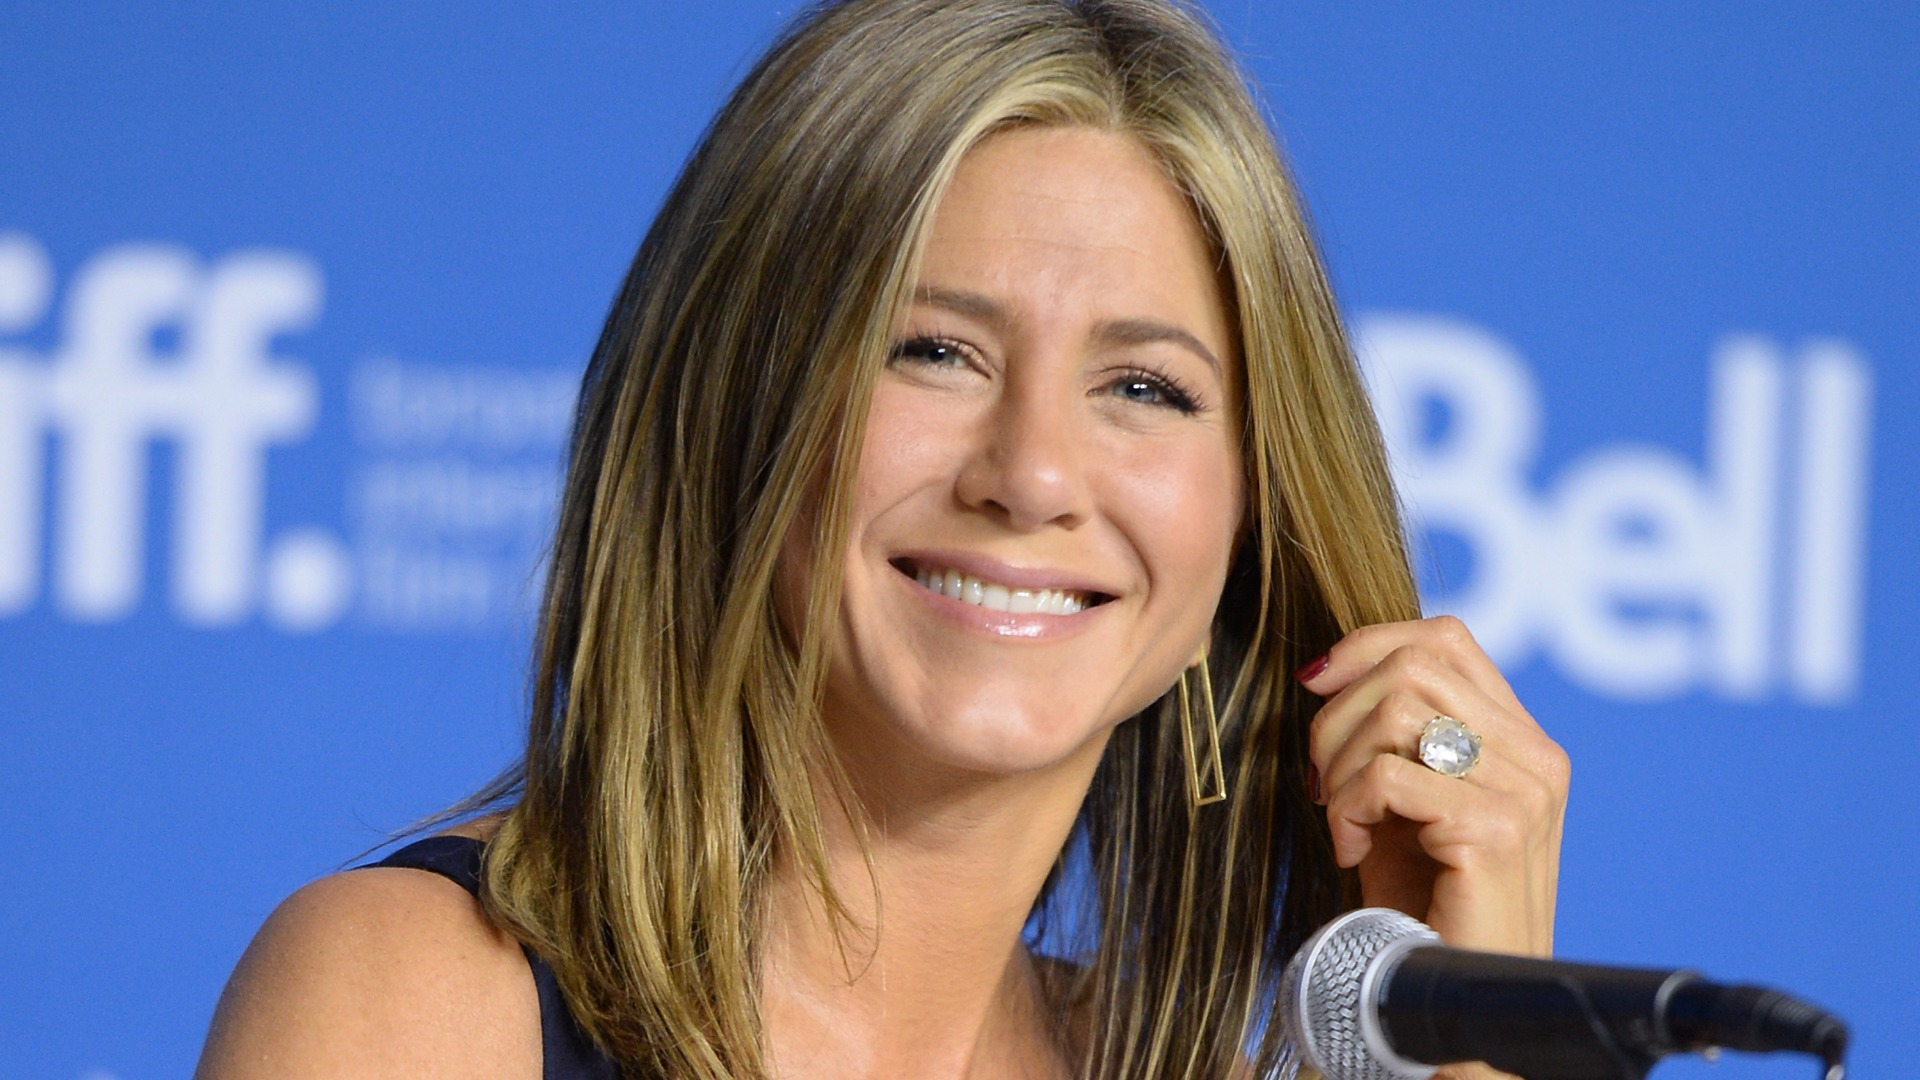 Will Jennifer Aniston win an Oscar for her new indie movie Cake?